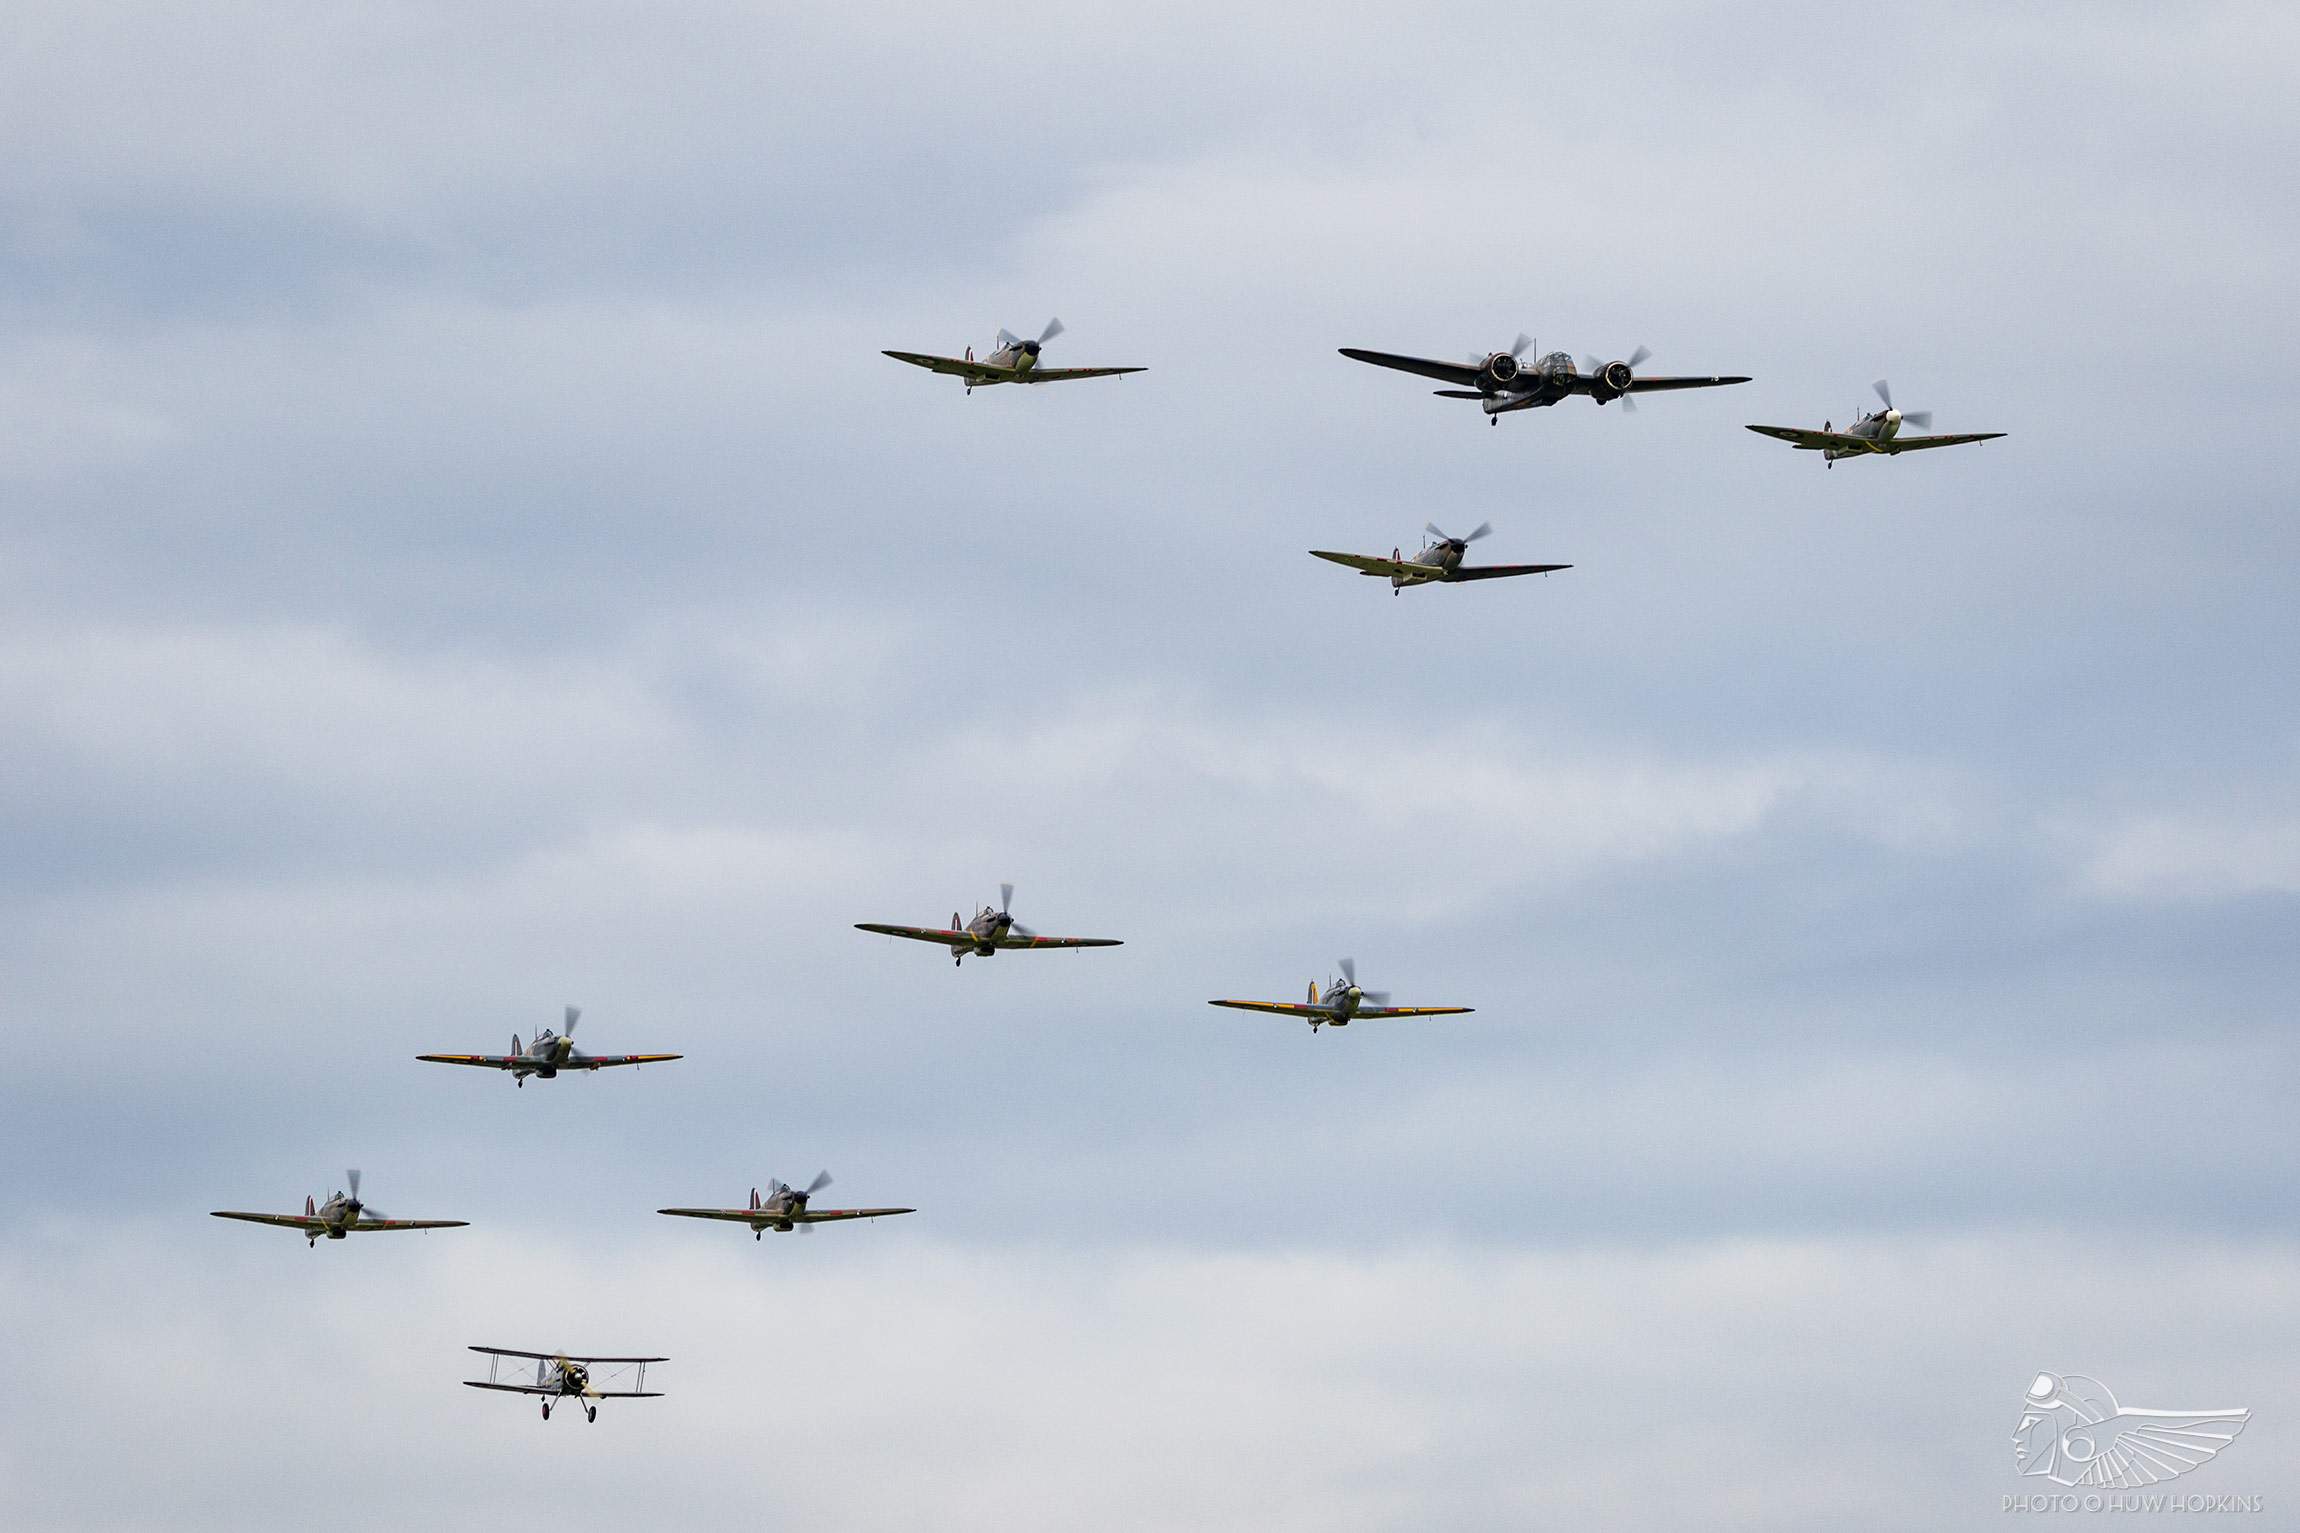 iwm duxford's battle of britain spectacular | the vintage aviation echo